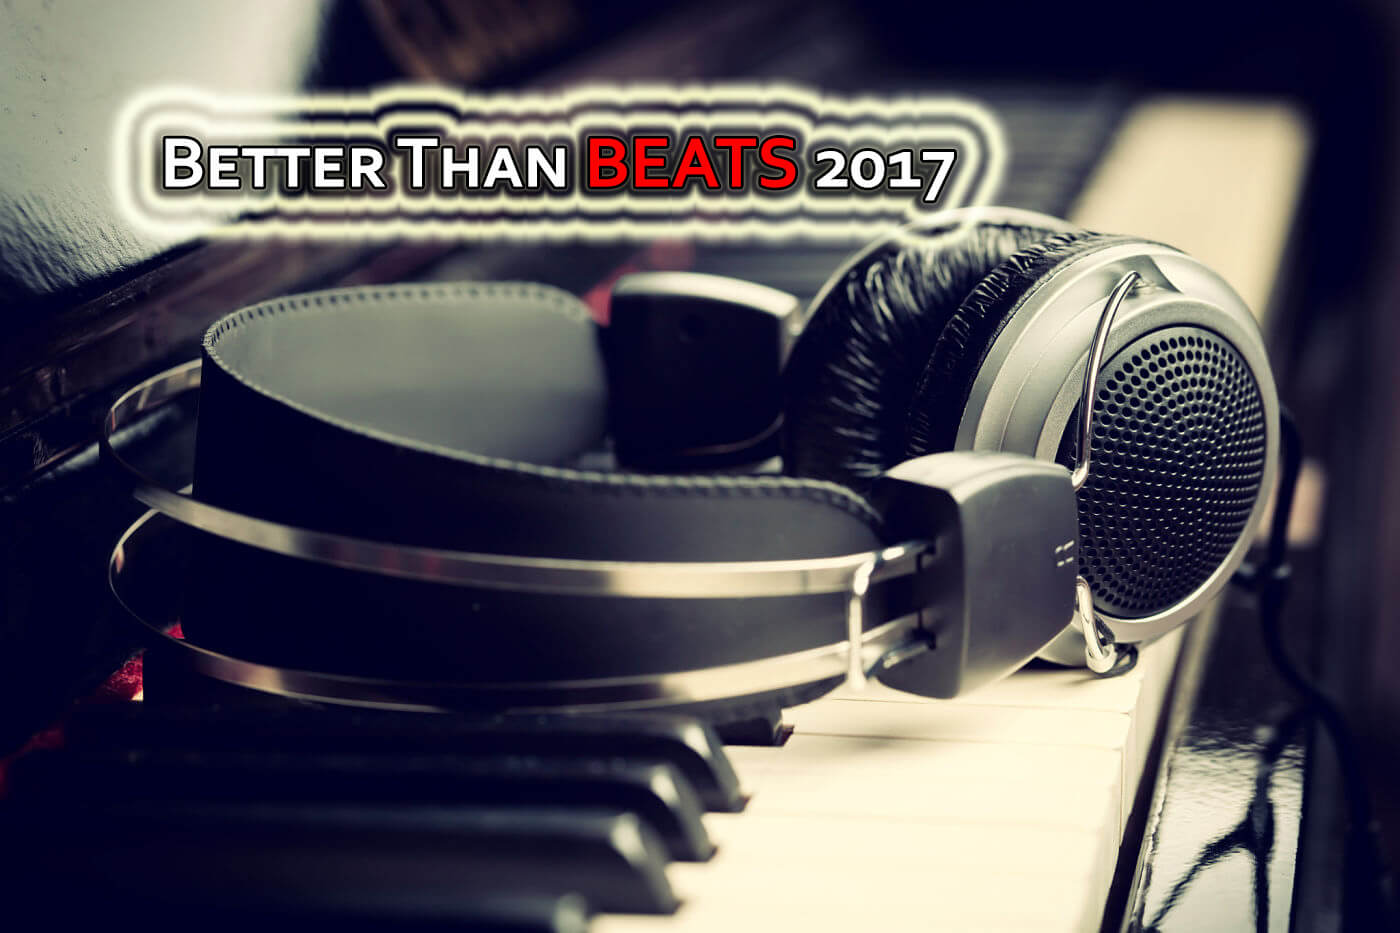 5 Headphones Better Than Beats By Dre For 2017